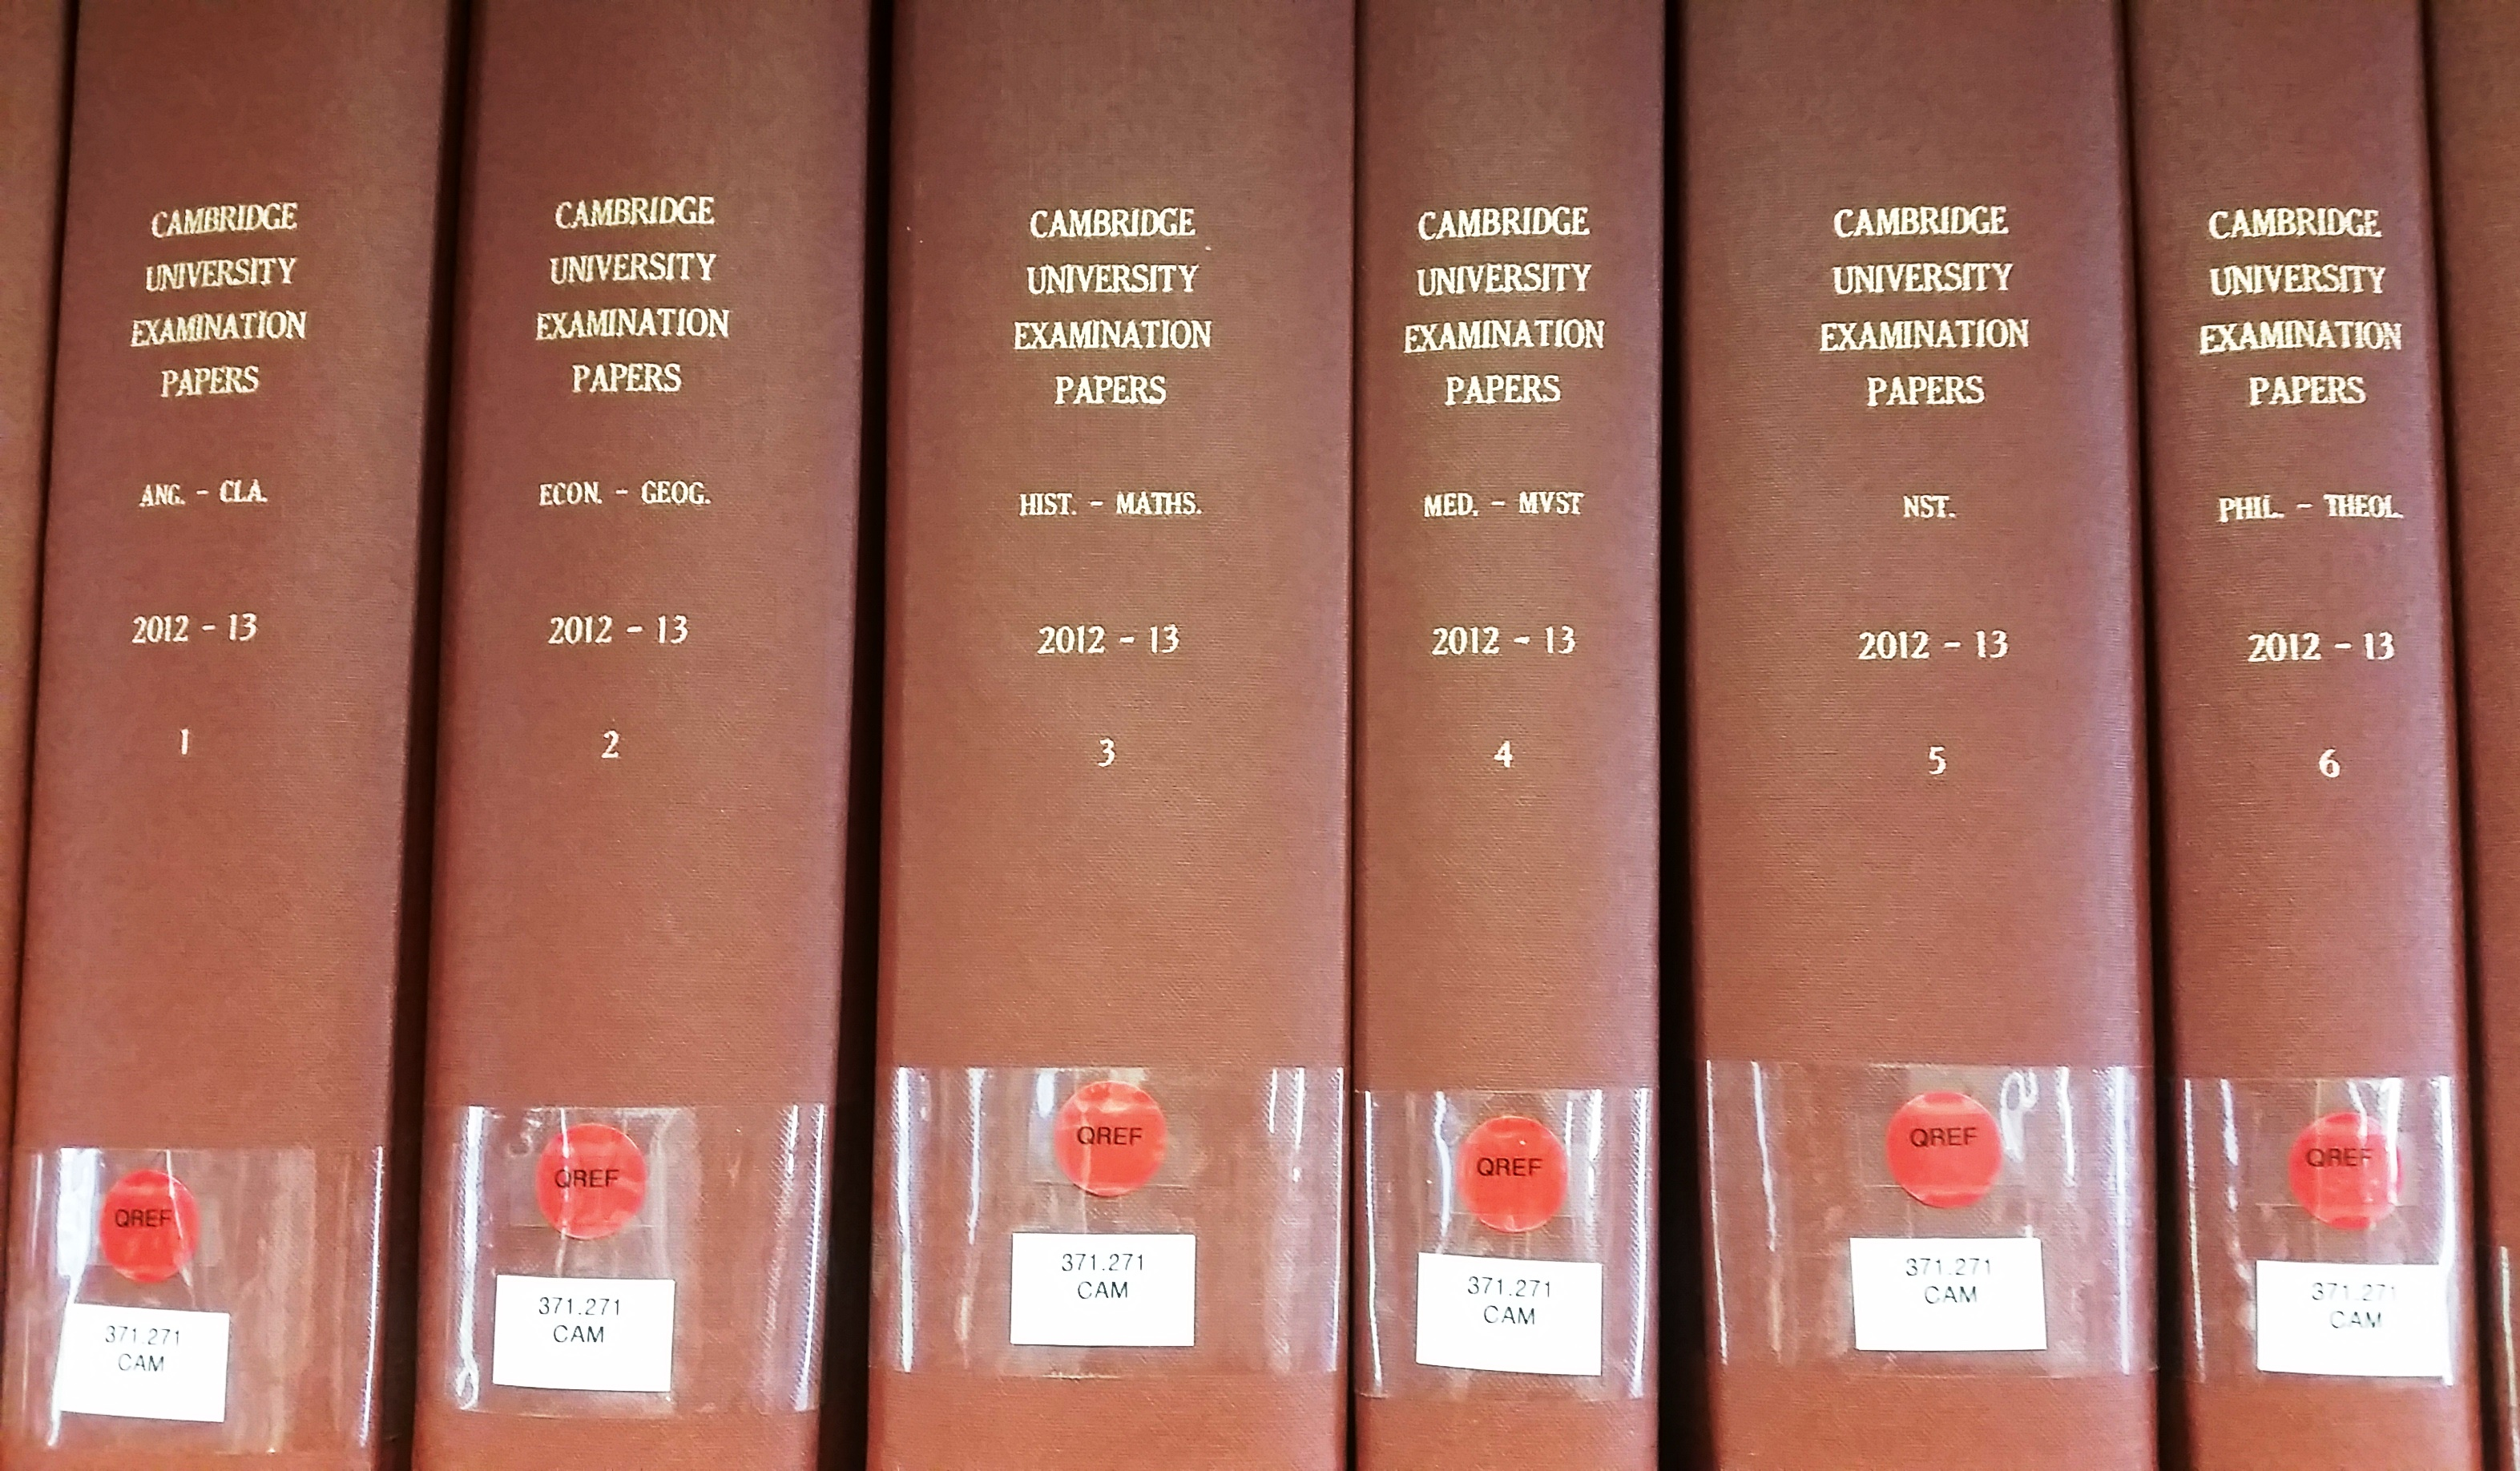 library dissertation conservative dentistry Paul gahn, mils assistant director for electronic and collection services health sciences library university of tennessee health science center 877 madison avenue room 234 memphis, tn 38163 http://libguides uthscedu/pgahn 901-448-7351 website / blog page social:facebook.